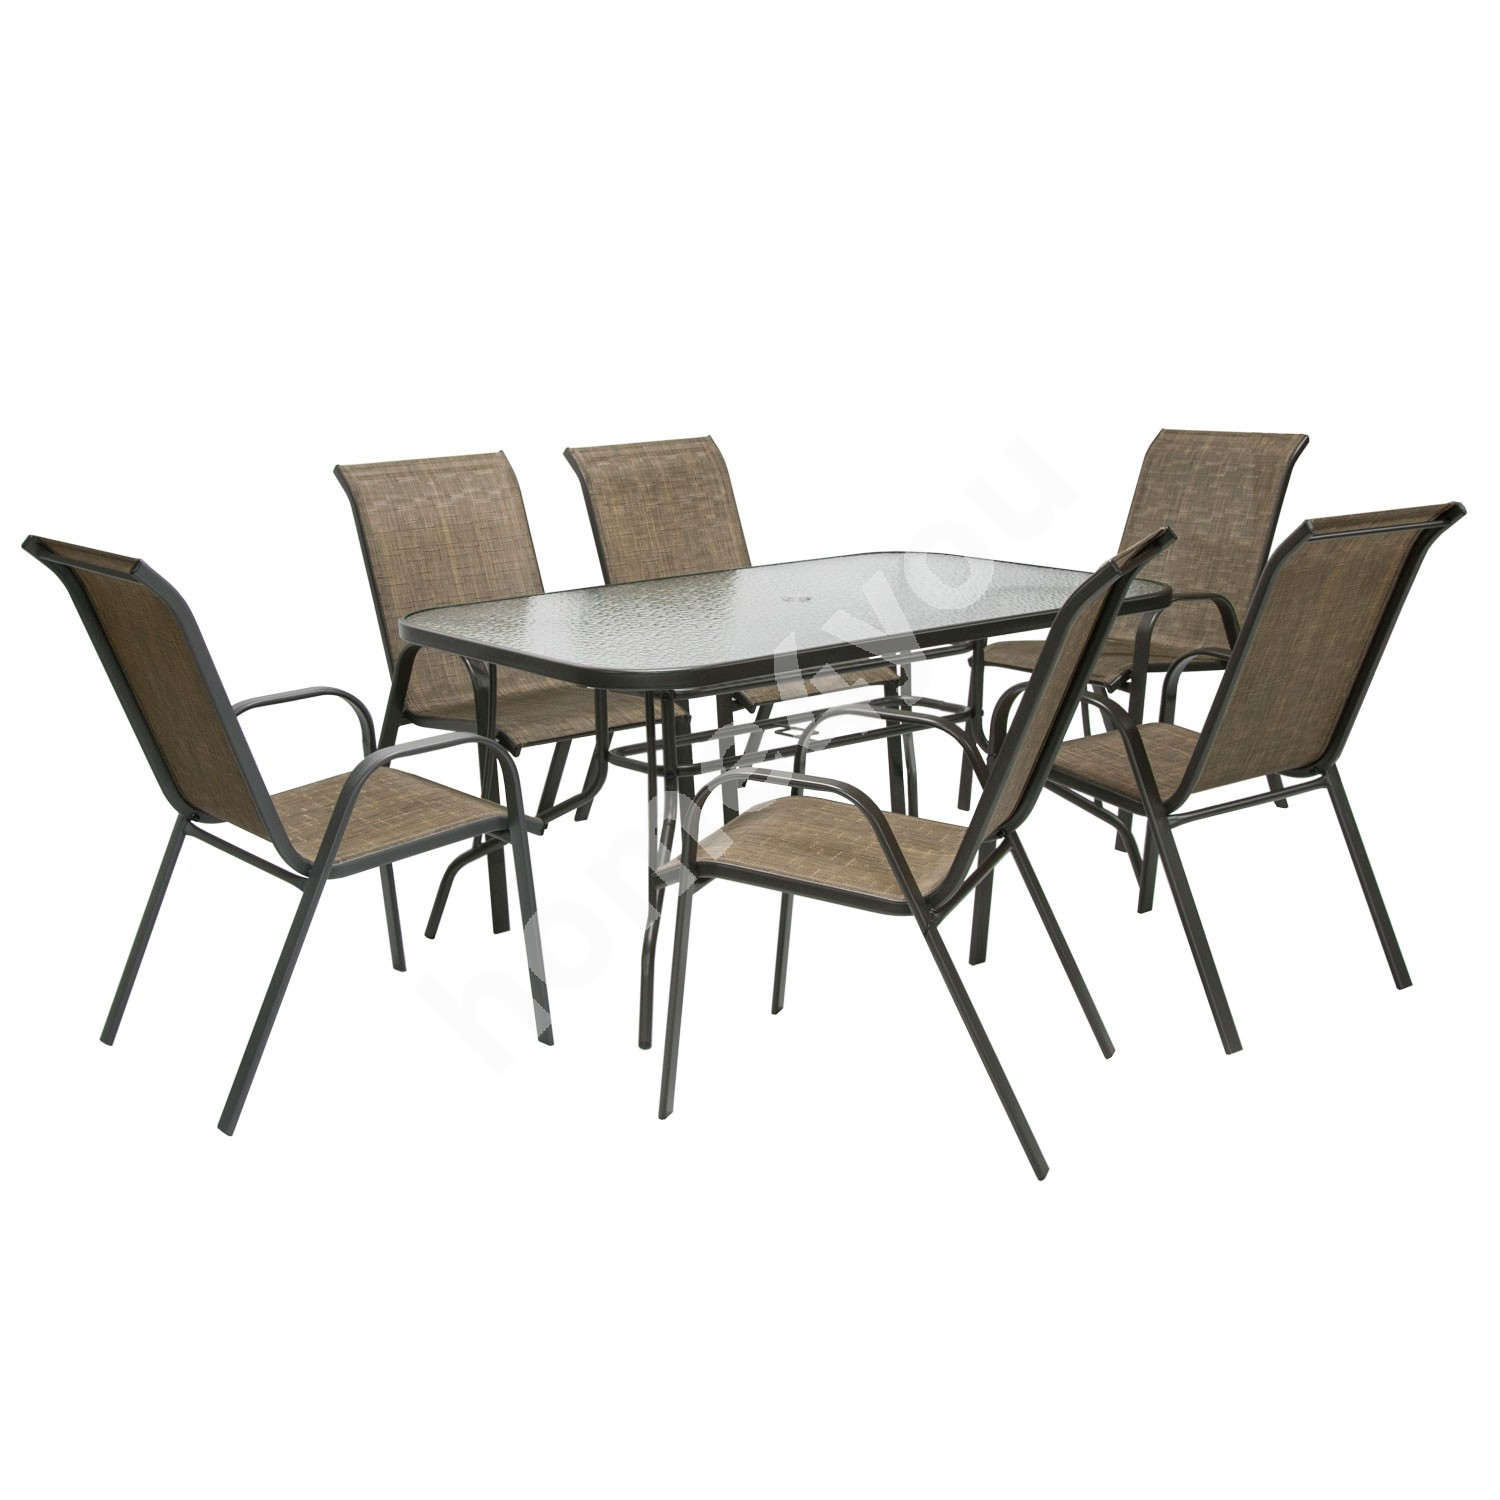 Set DUBLIN table and 6 chairs, 150x90xH70cm, table top: 5mm transparent wave glass, steel frame, color: dark brown